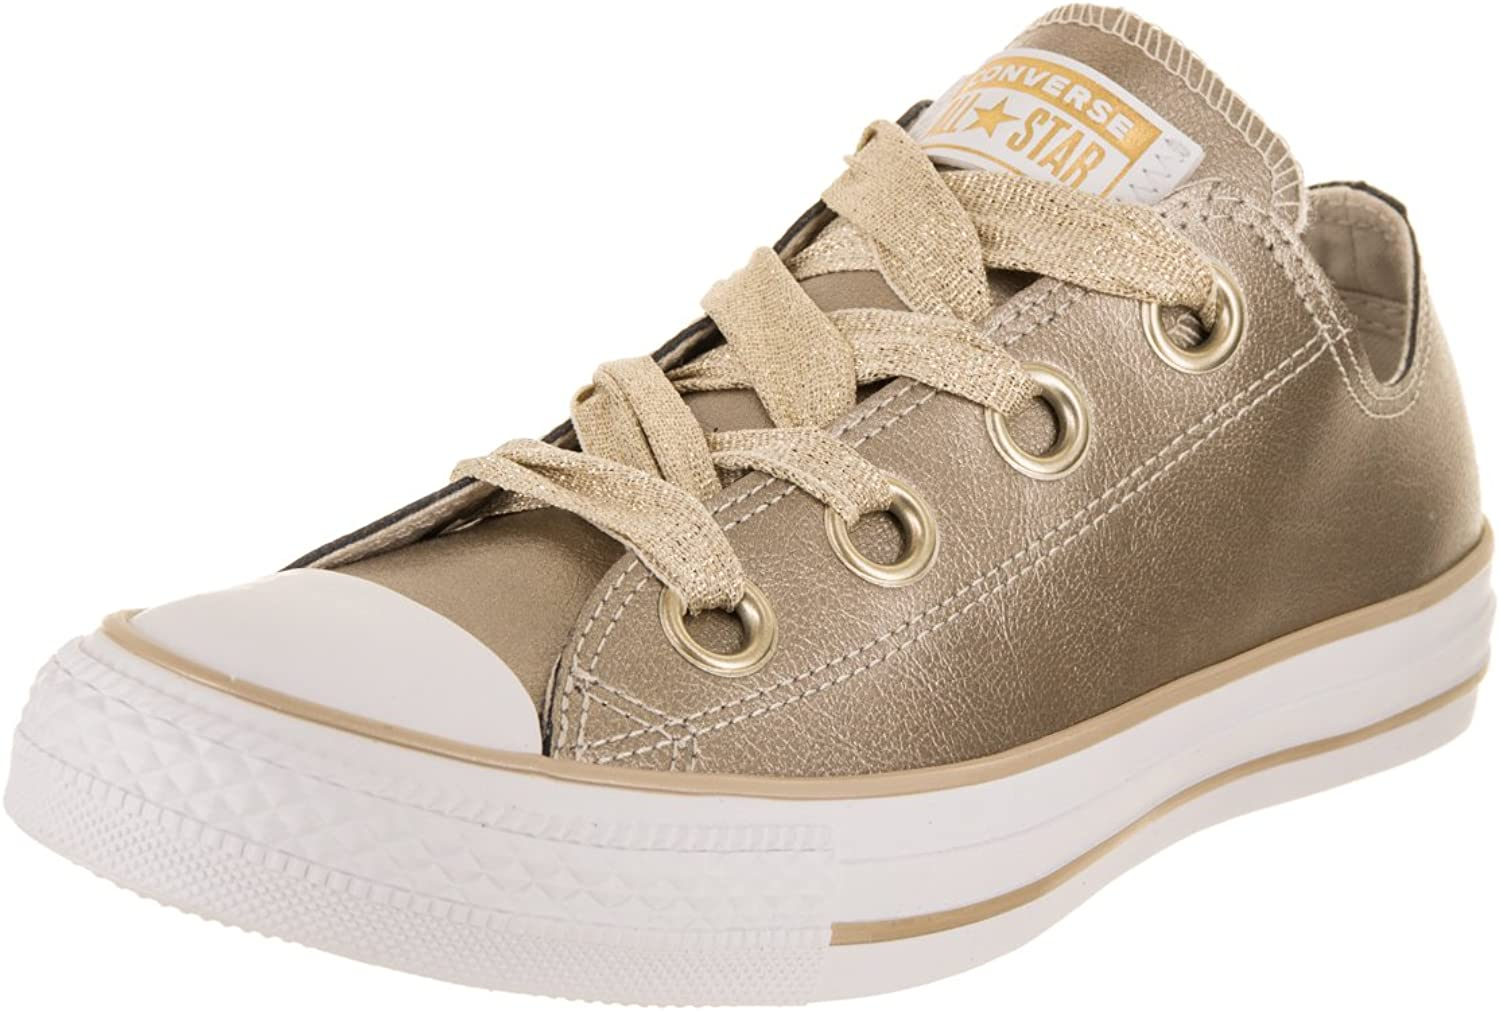 Converse Women's Chuck Taylor All Star Big Eyelets Ox Casual shoes